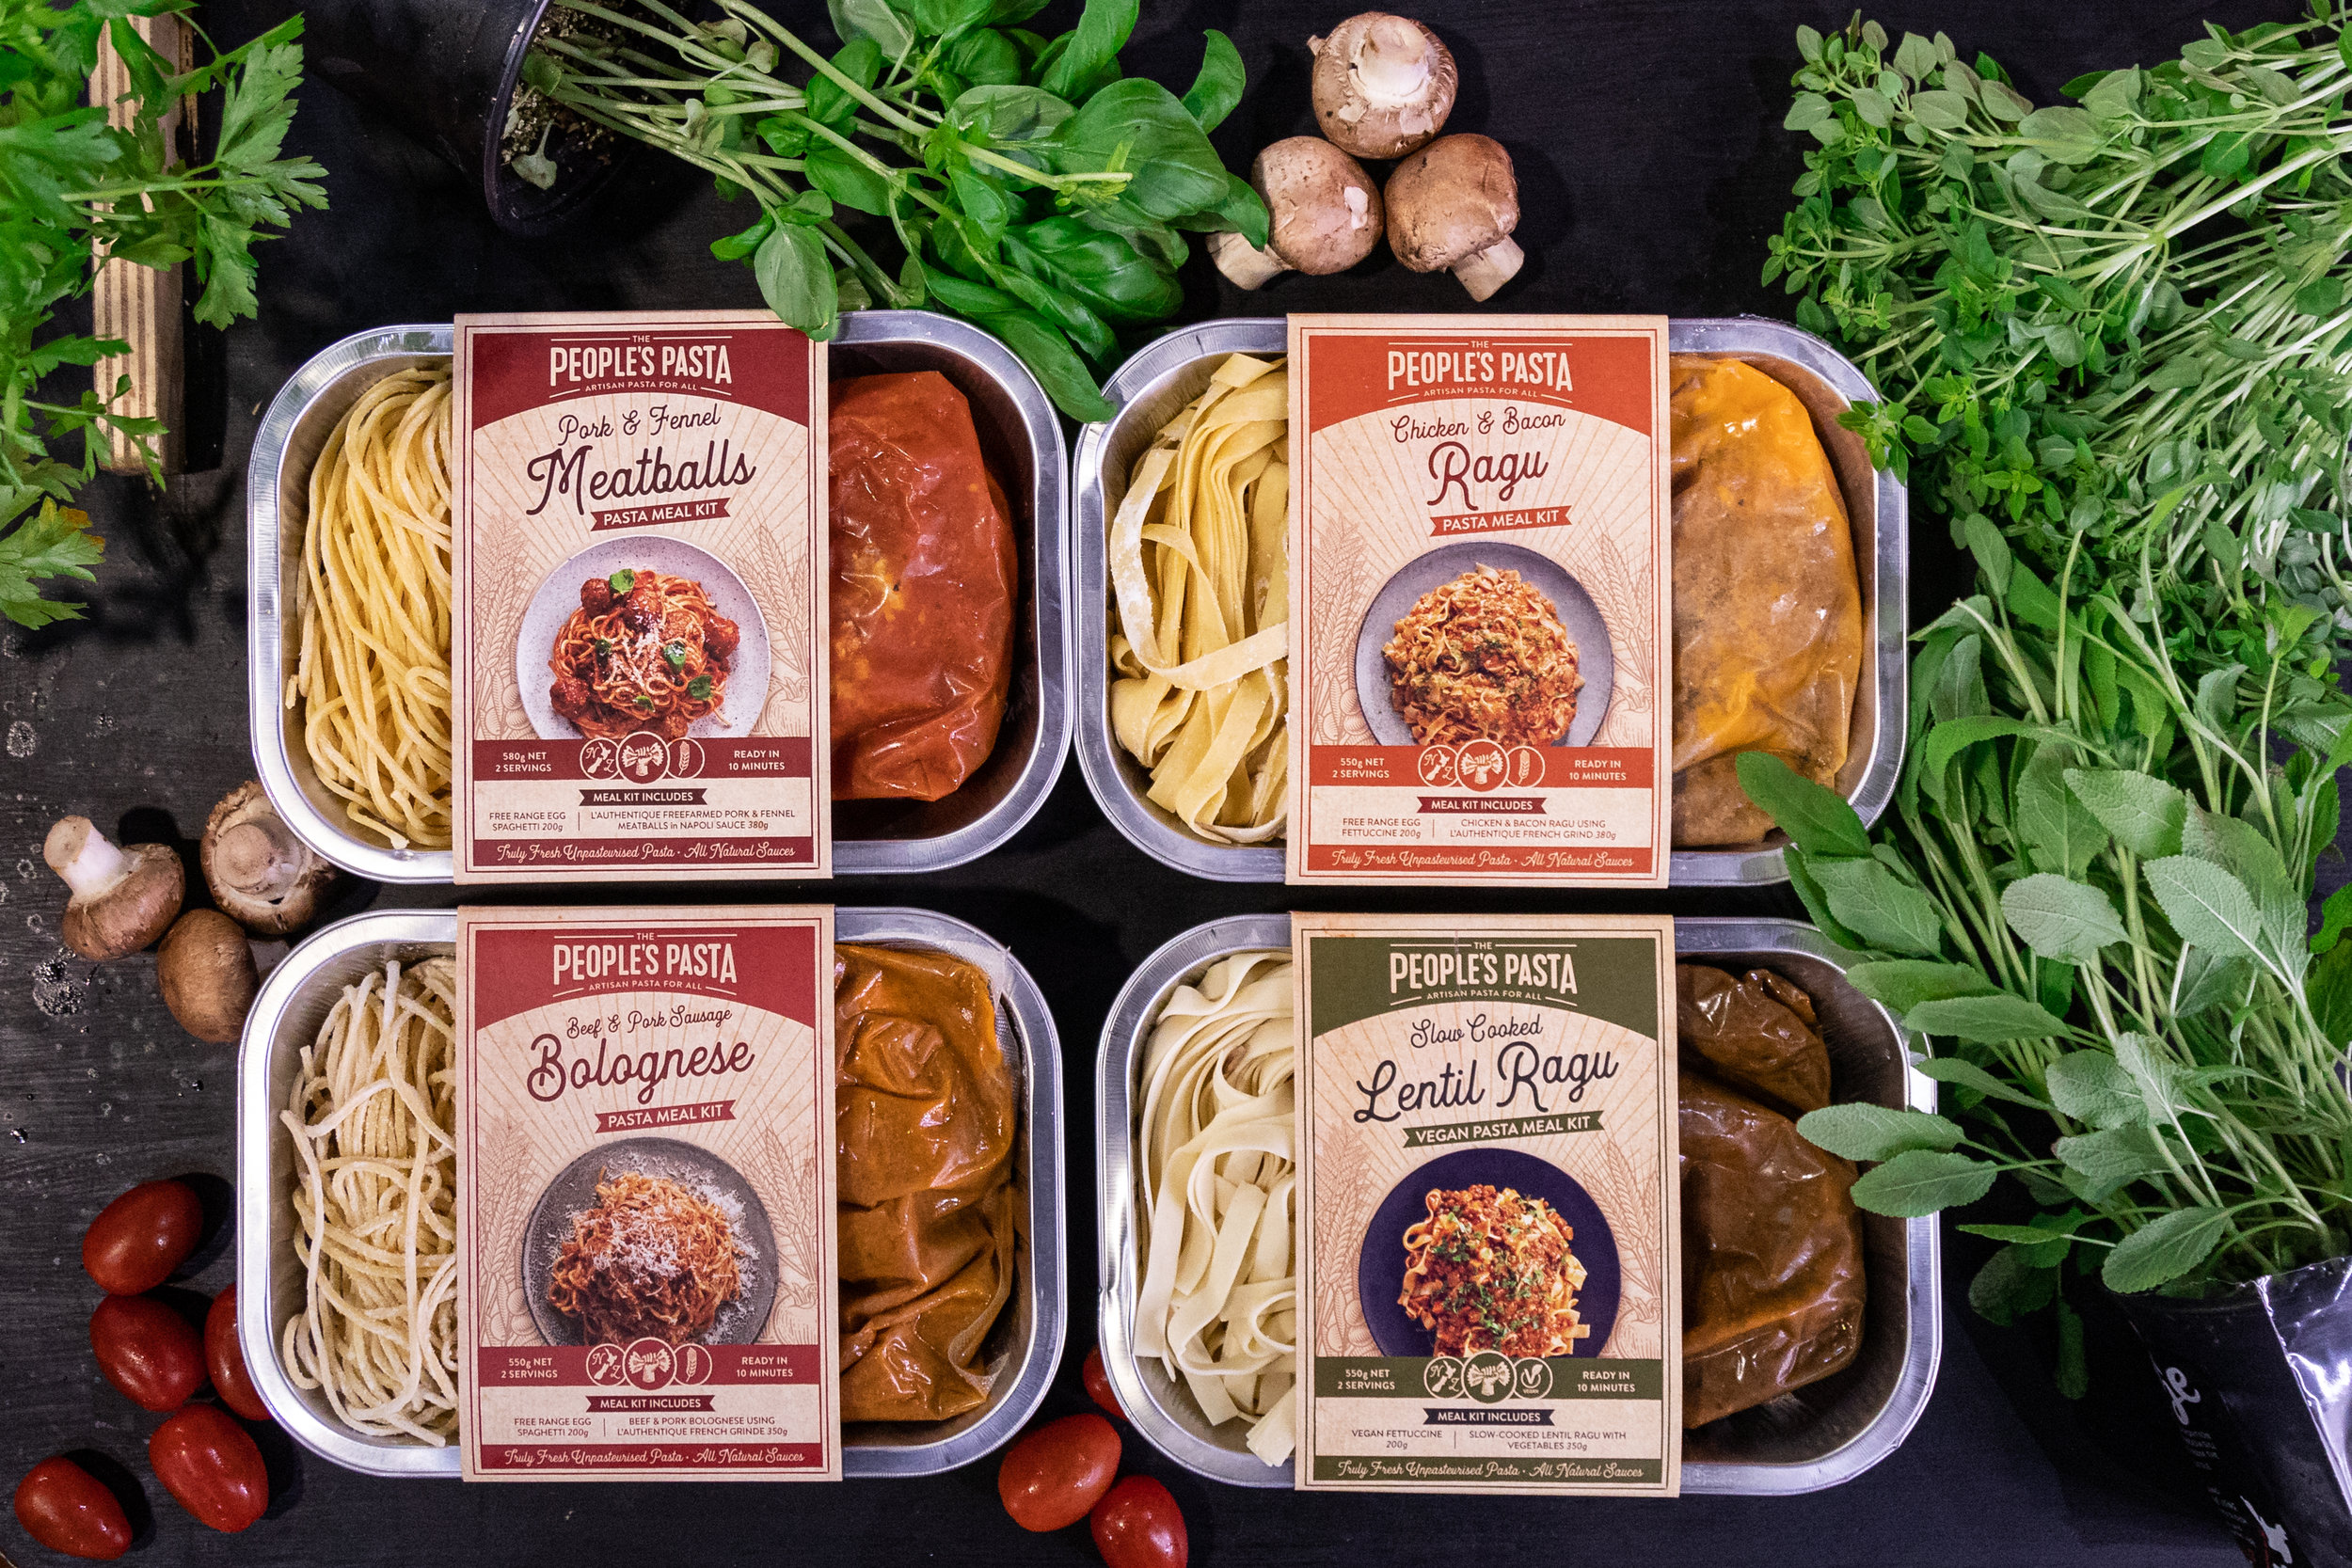 Meal kits are available from - New World Remuera, AucklandNew World Victoria Park, AucklandNew World Stonefields, AucklandFresh Collective Alberton, AucklandNew World OrewaNew World New LynnWaiheke Specialists FoodsPak N Save SilverdaleFrankies WhangaparoaClarks Organic ButchersFour Square NgongotahaOutside of AucklandMatakana DeliNew World WhitiangaNew World Thorndon, WellingtonThe Merchant of TaupoNew World Havelock NorthFour Square WaipapaFresh Choice QueenstownFour Square OkatoBethlehem ButchersTO STOCK RANGE PLEASE EMAIL: WADE@THEBUTCHERTHEBAKER.NZ